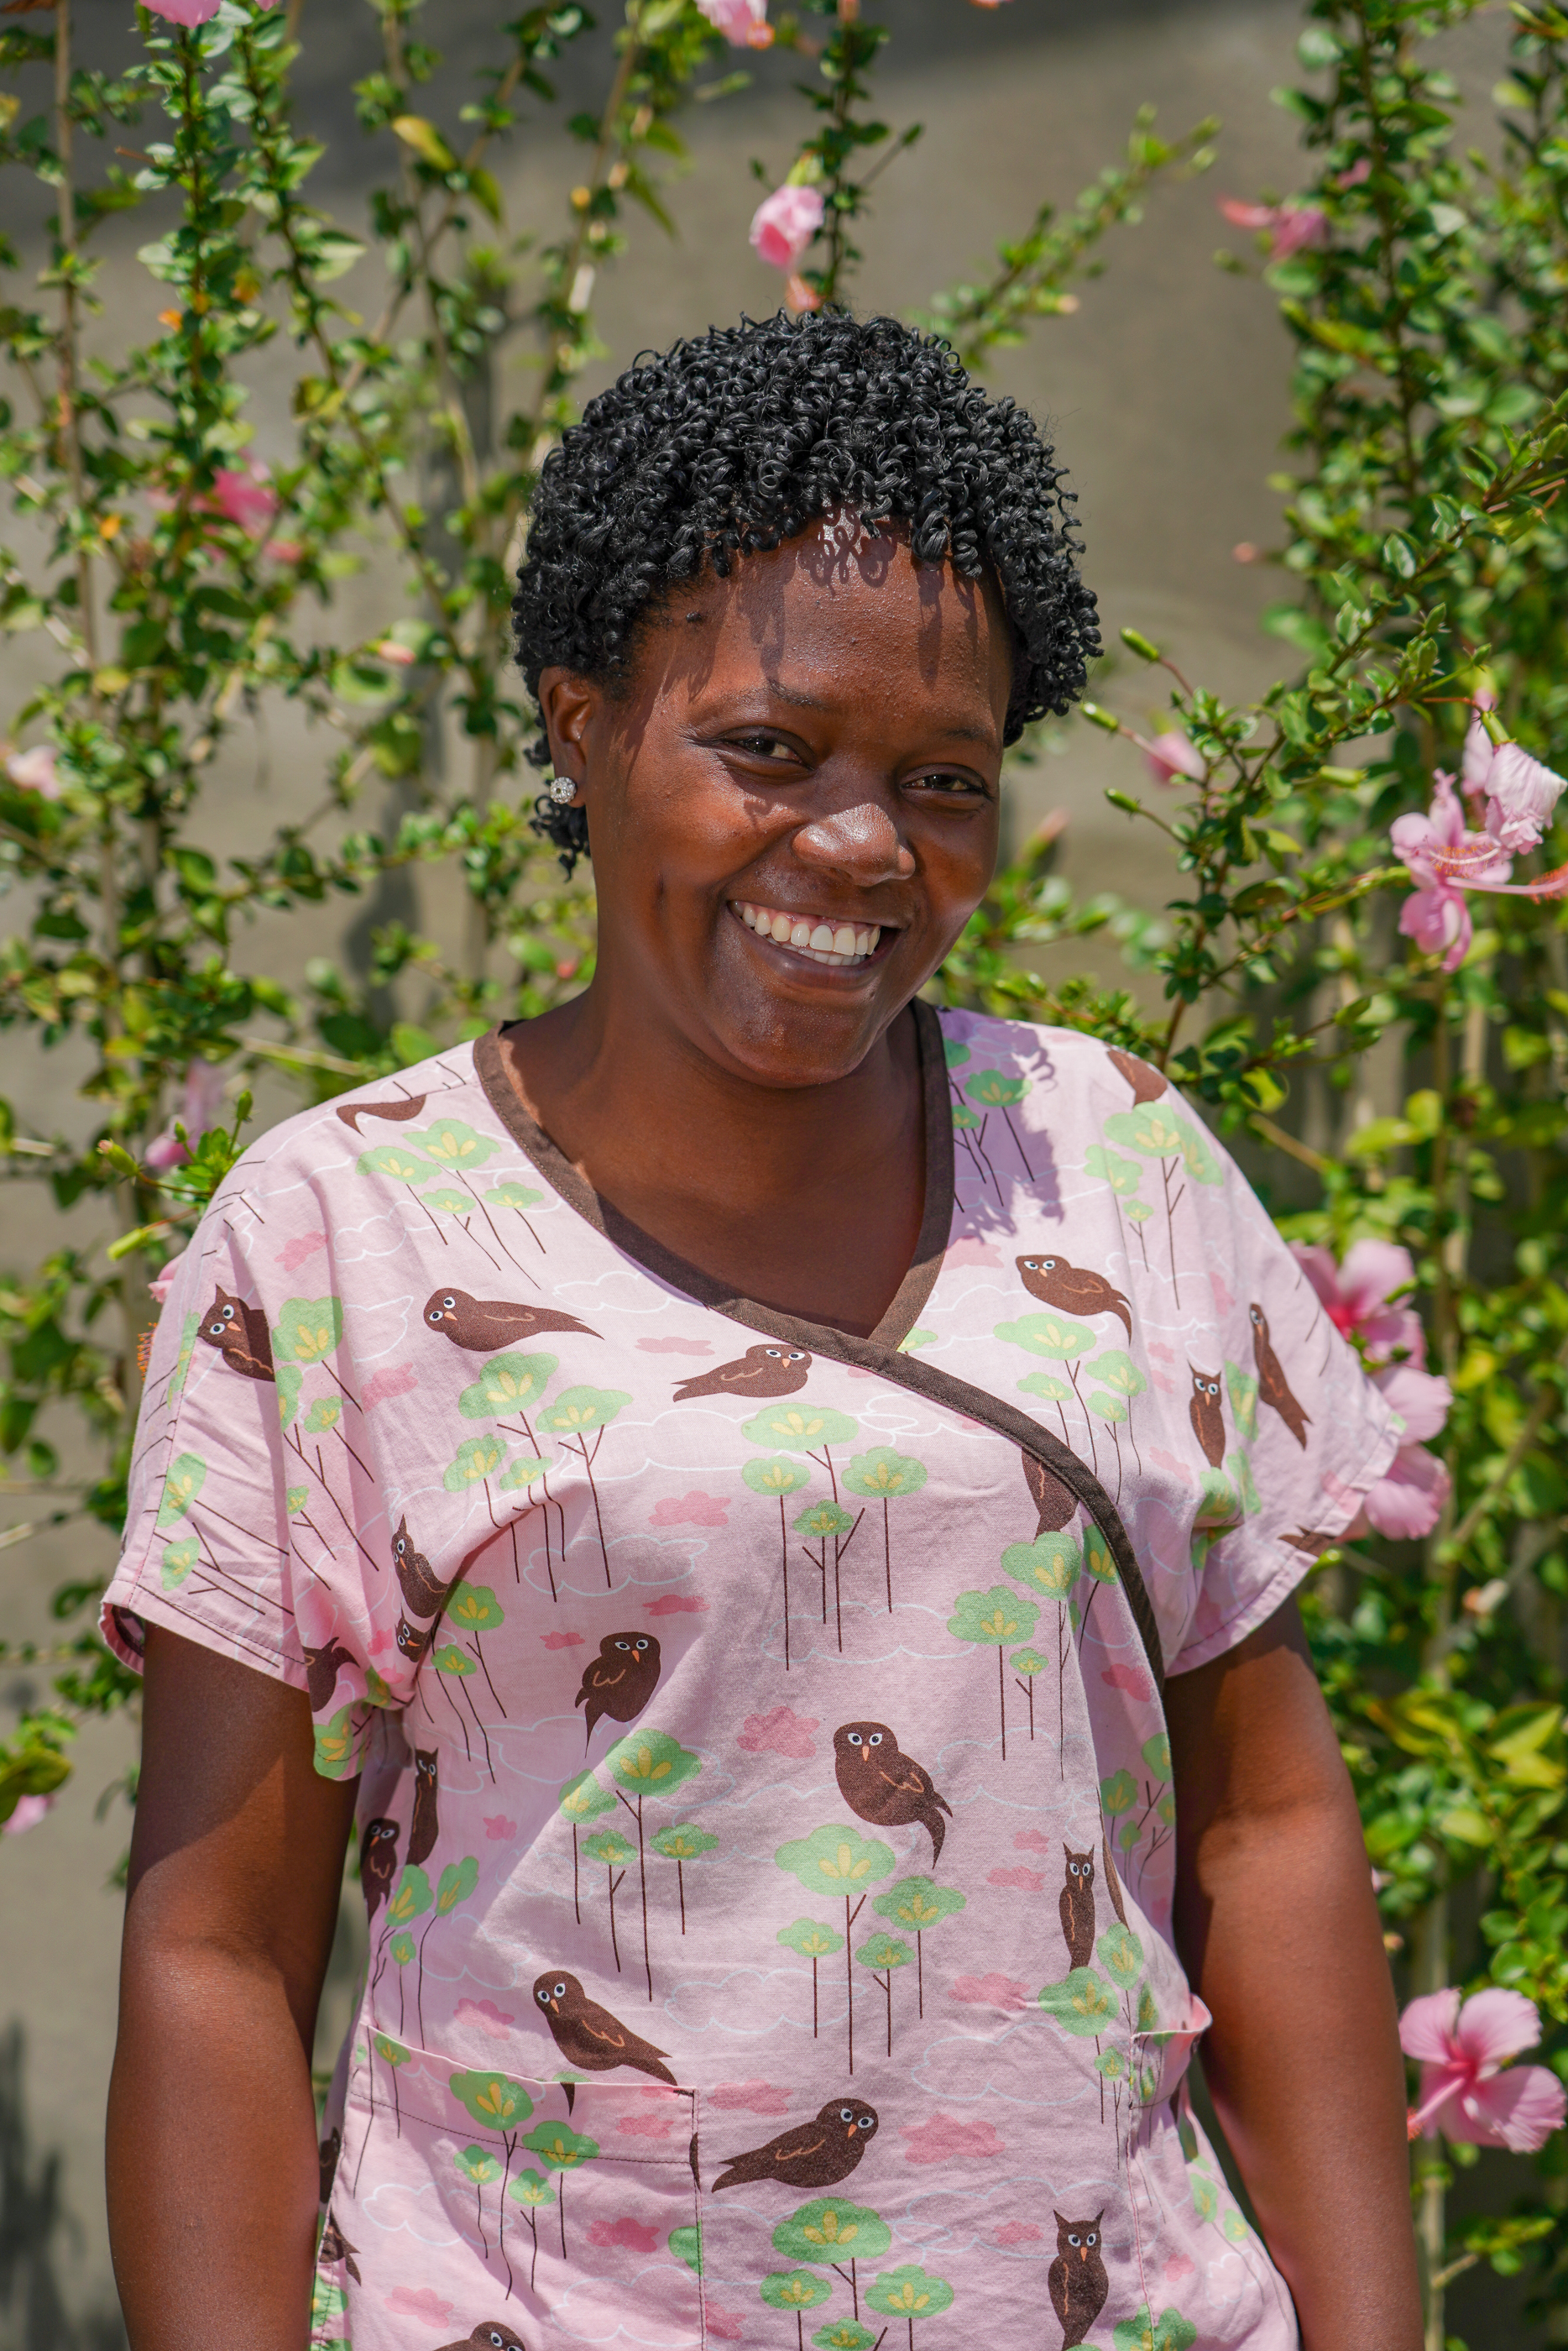 Josephine Cossier - Lead Nurse Midwife - As a nurse-midwife, Josephine has been an integral part of the Strong Start Maternity Center Team it's opening in March 2018. After graduating nursing school in 2010, she worked at Hopital Convention Baptiste d'Haiti in both the emergency room and the spinal cord injury rehab center. After graduating from midwifery school in Port-au-Prince in 2014, she worked in a variety of locations in cholera relief, primary care, and maternity services. Before joining Second Mile's Strong Start Team, she worked for two years at Hopital Fort-Saint Michel in their maternity department. When she is not working with women and families at the maternity center, she loves being at home with her husband and three children.